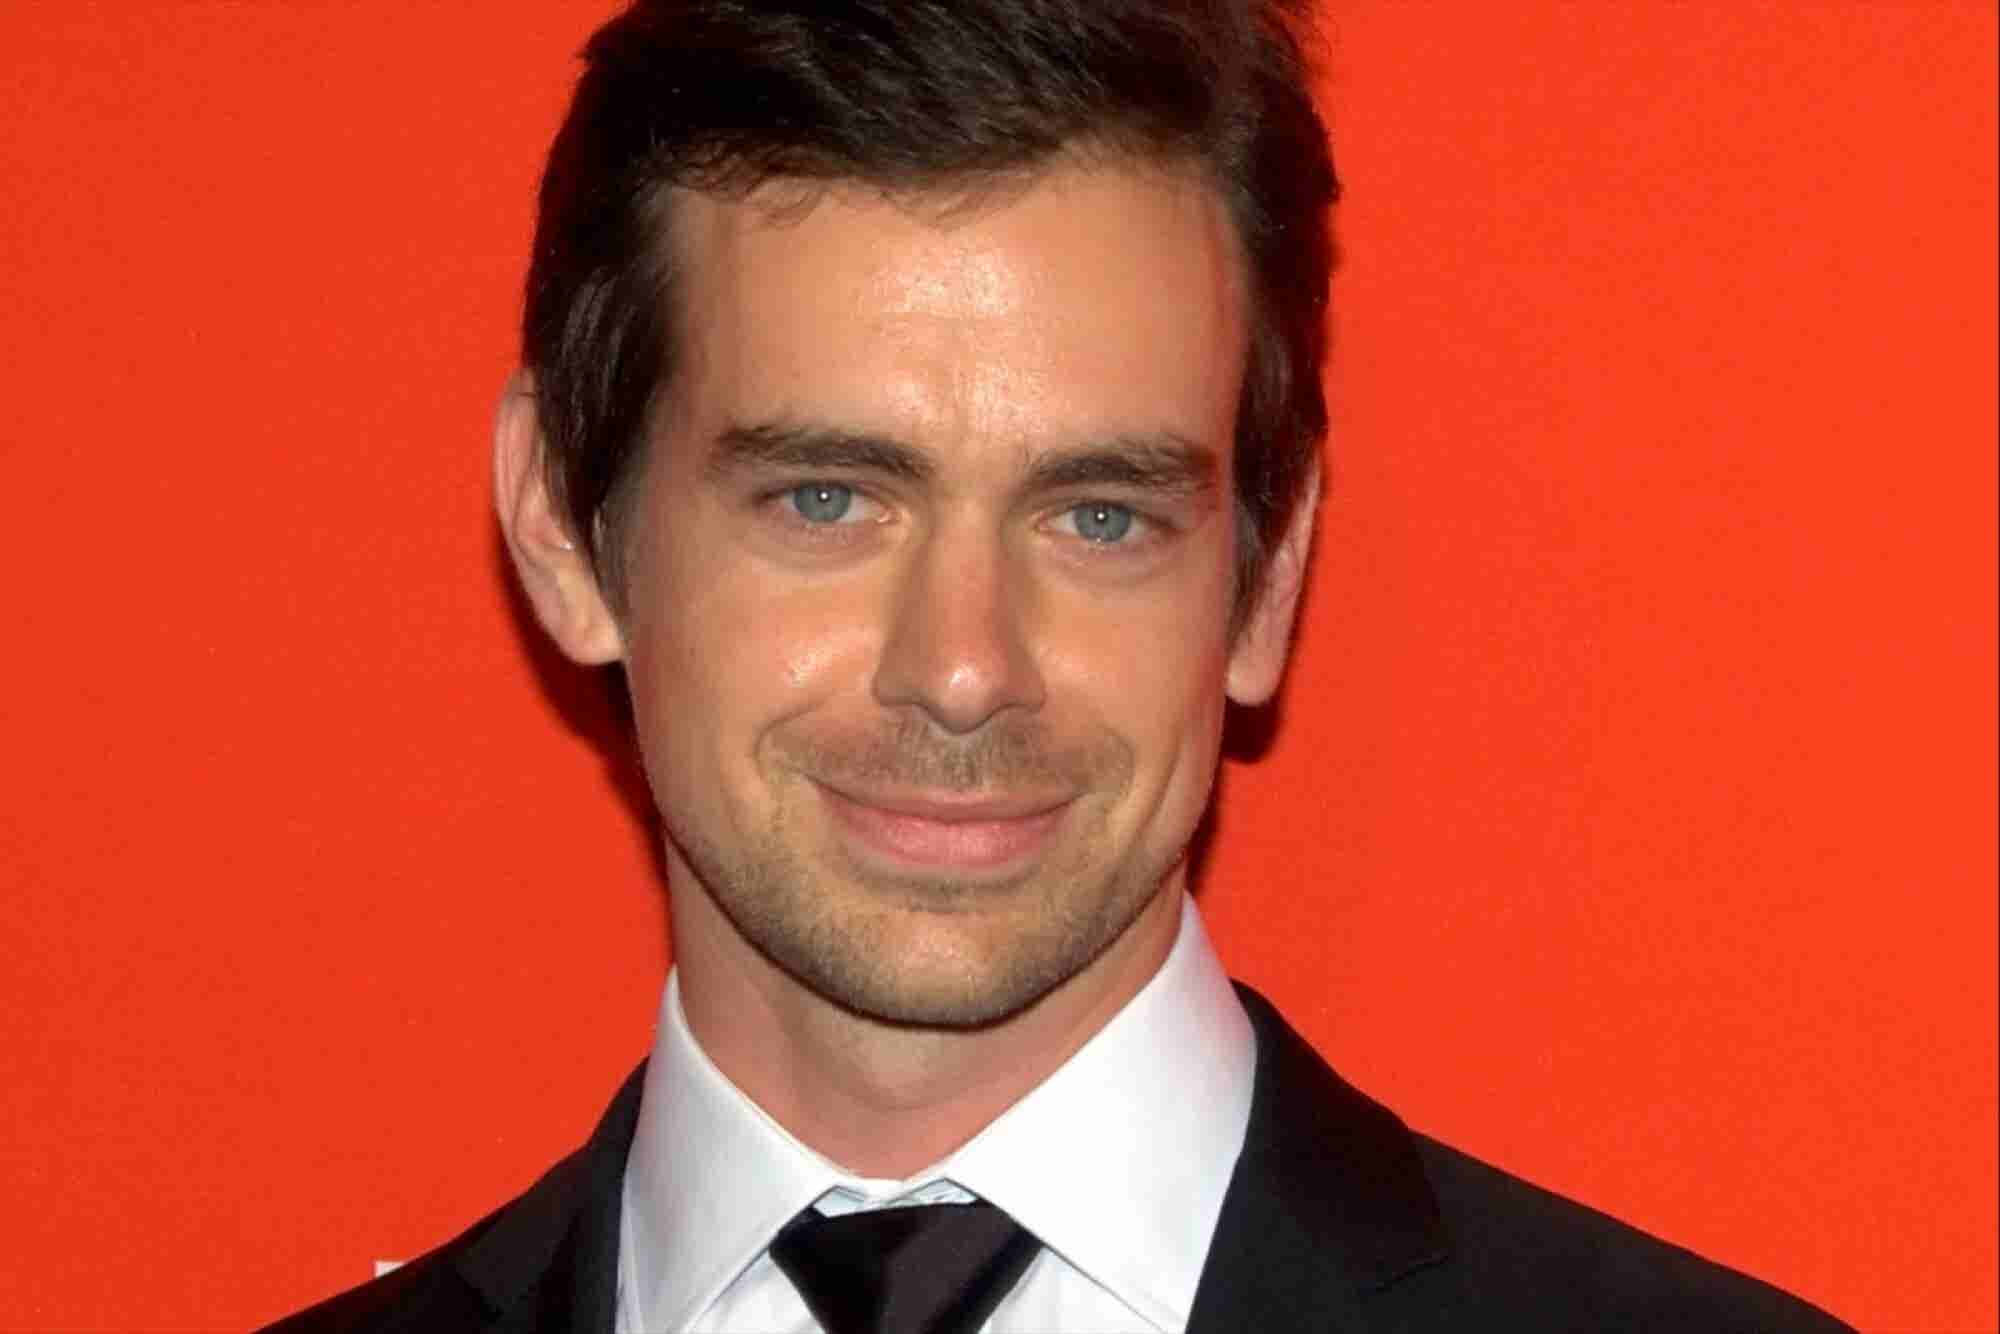 So Just How Much Is Jack Dorsey's Salary at Square?